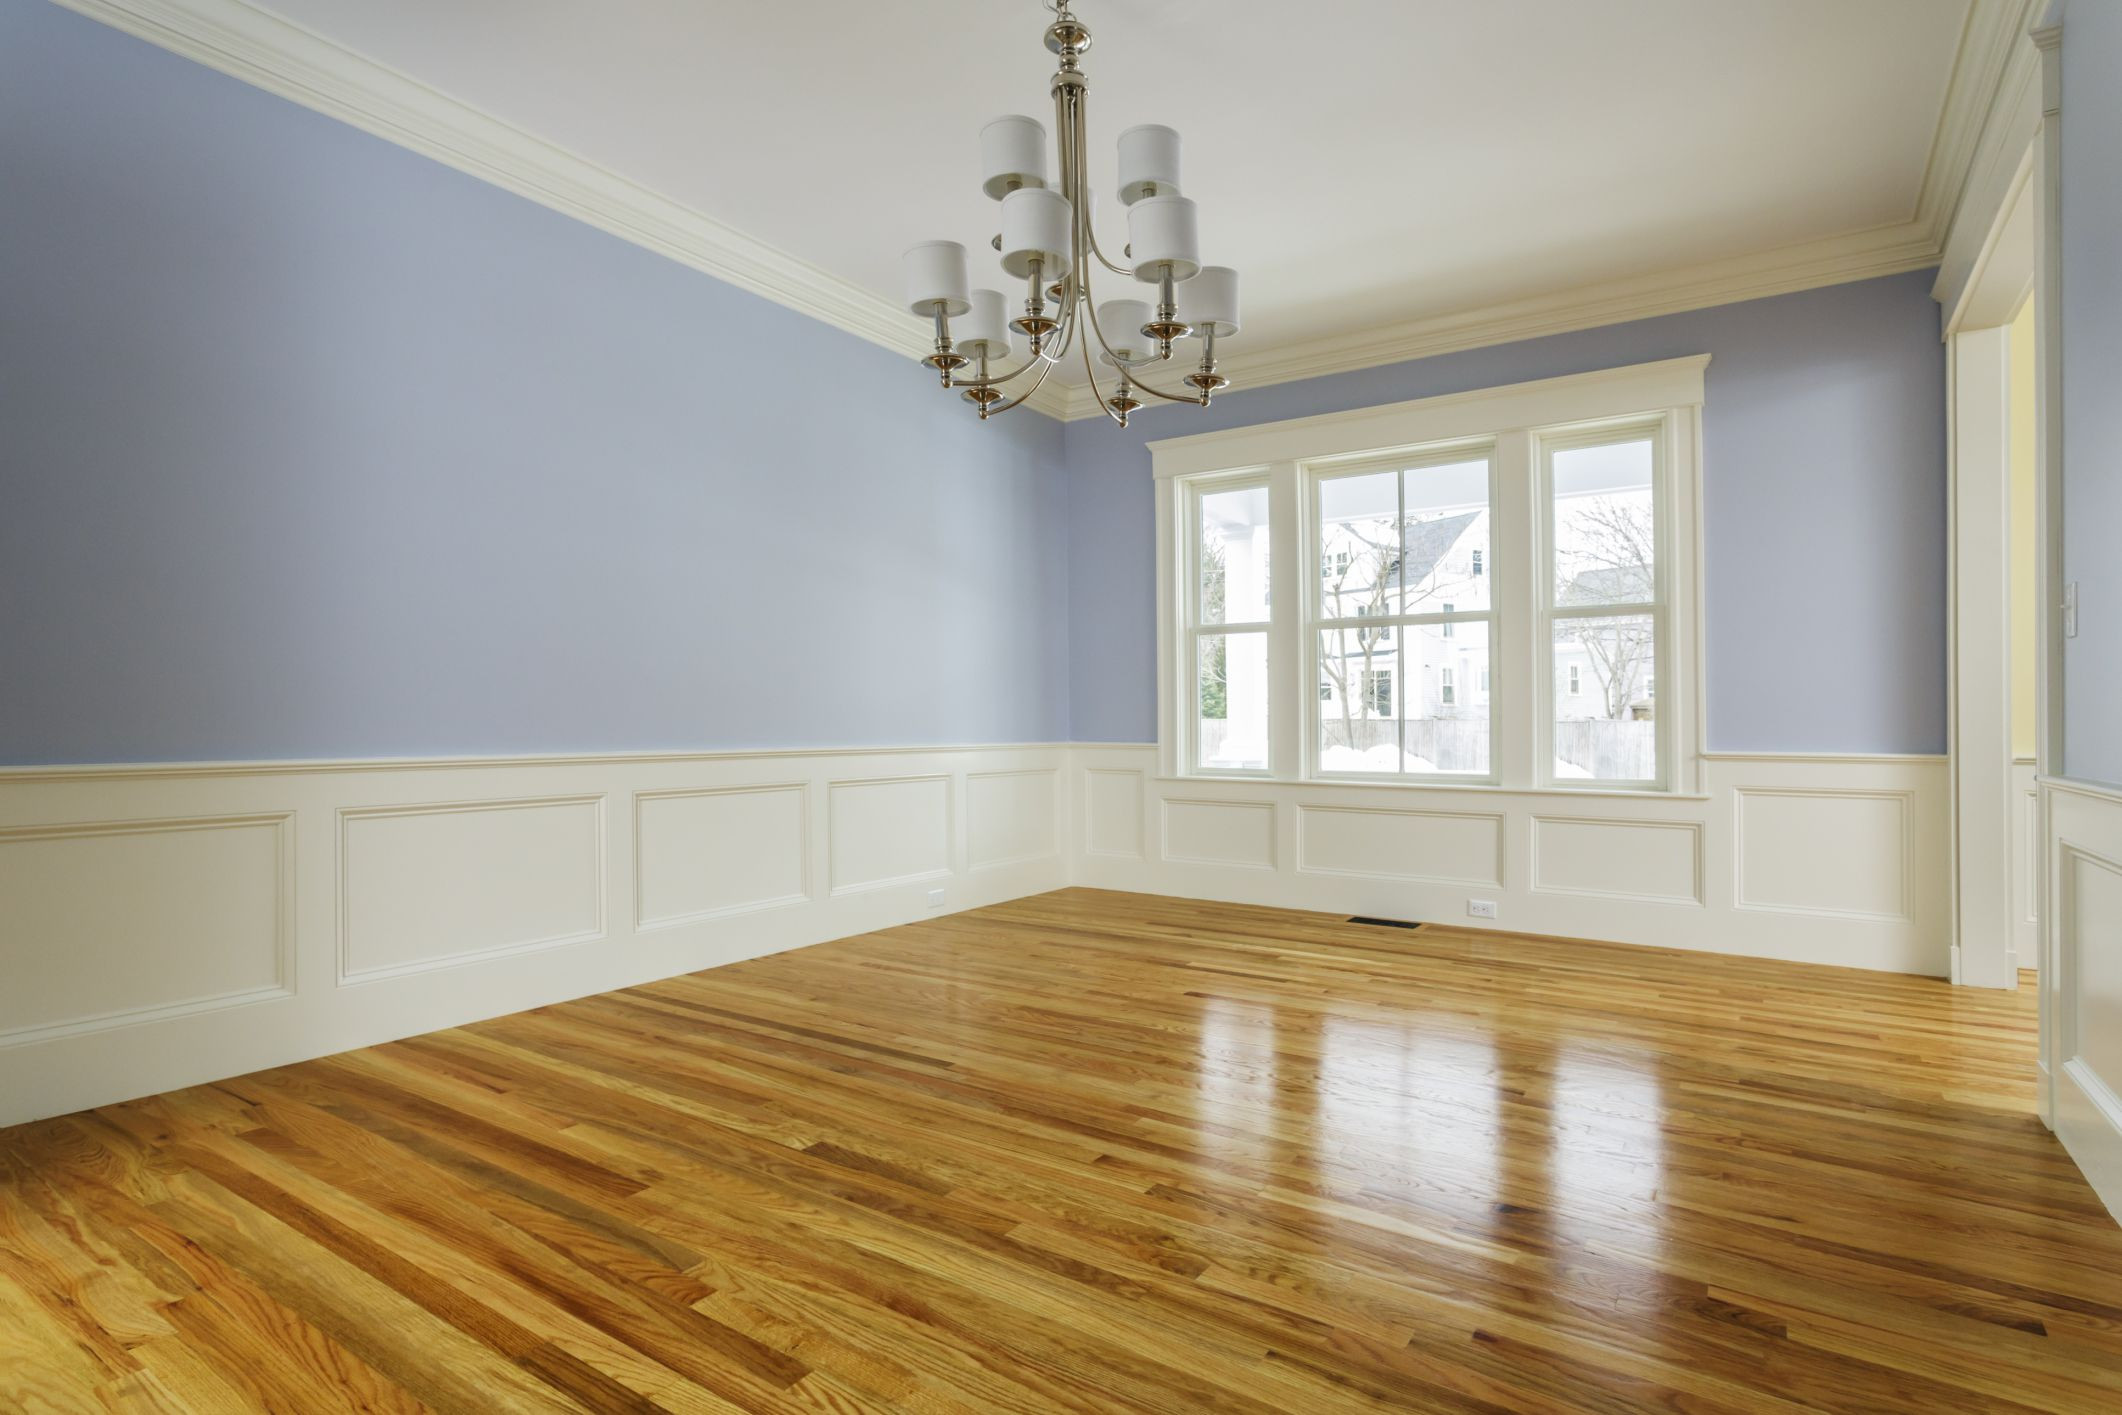 cheap hardwood flooring in georgia of the cost to refinish hardwood floors within 168686572 highres 56a2fd773df78cf7727b6cb3